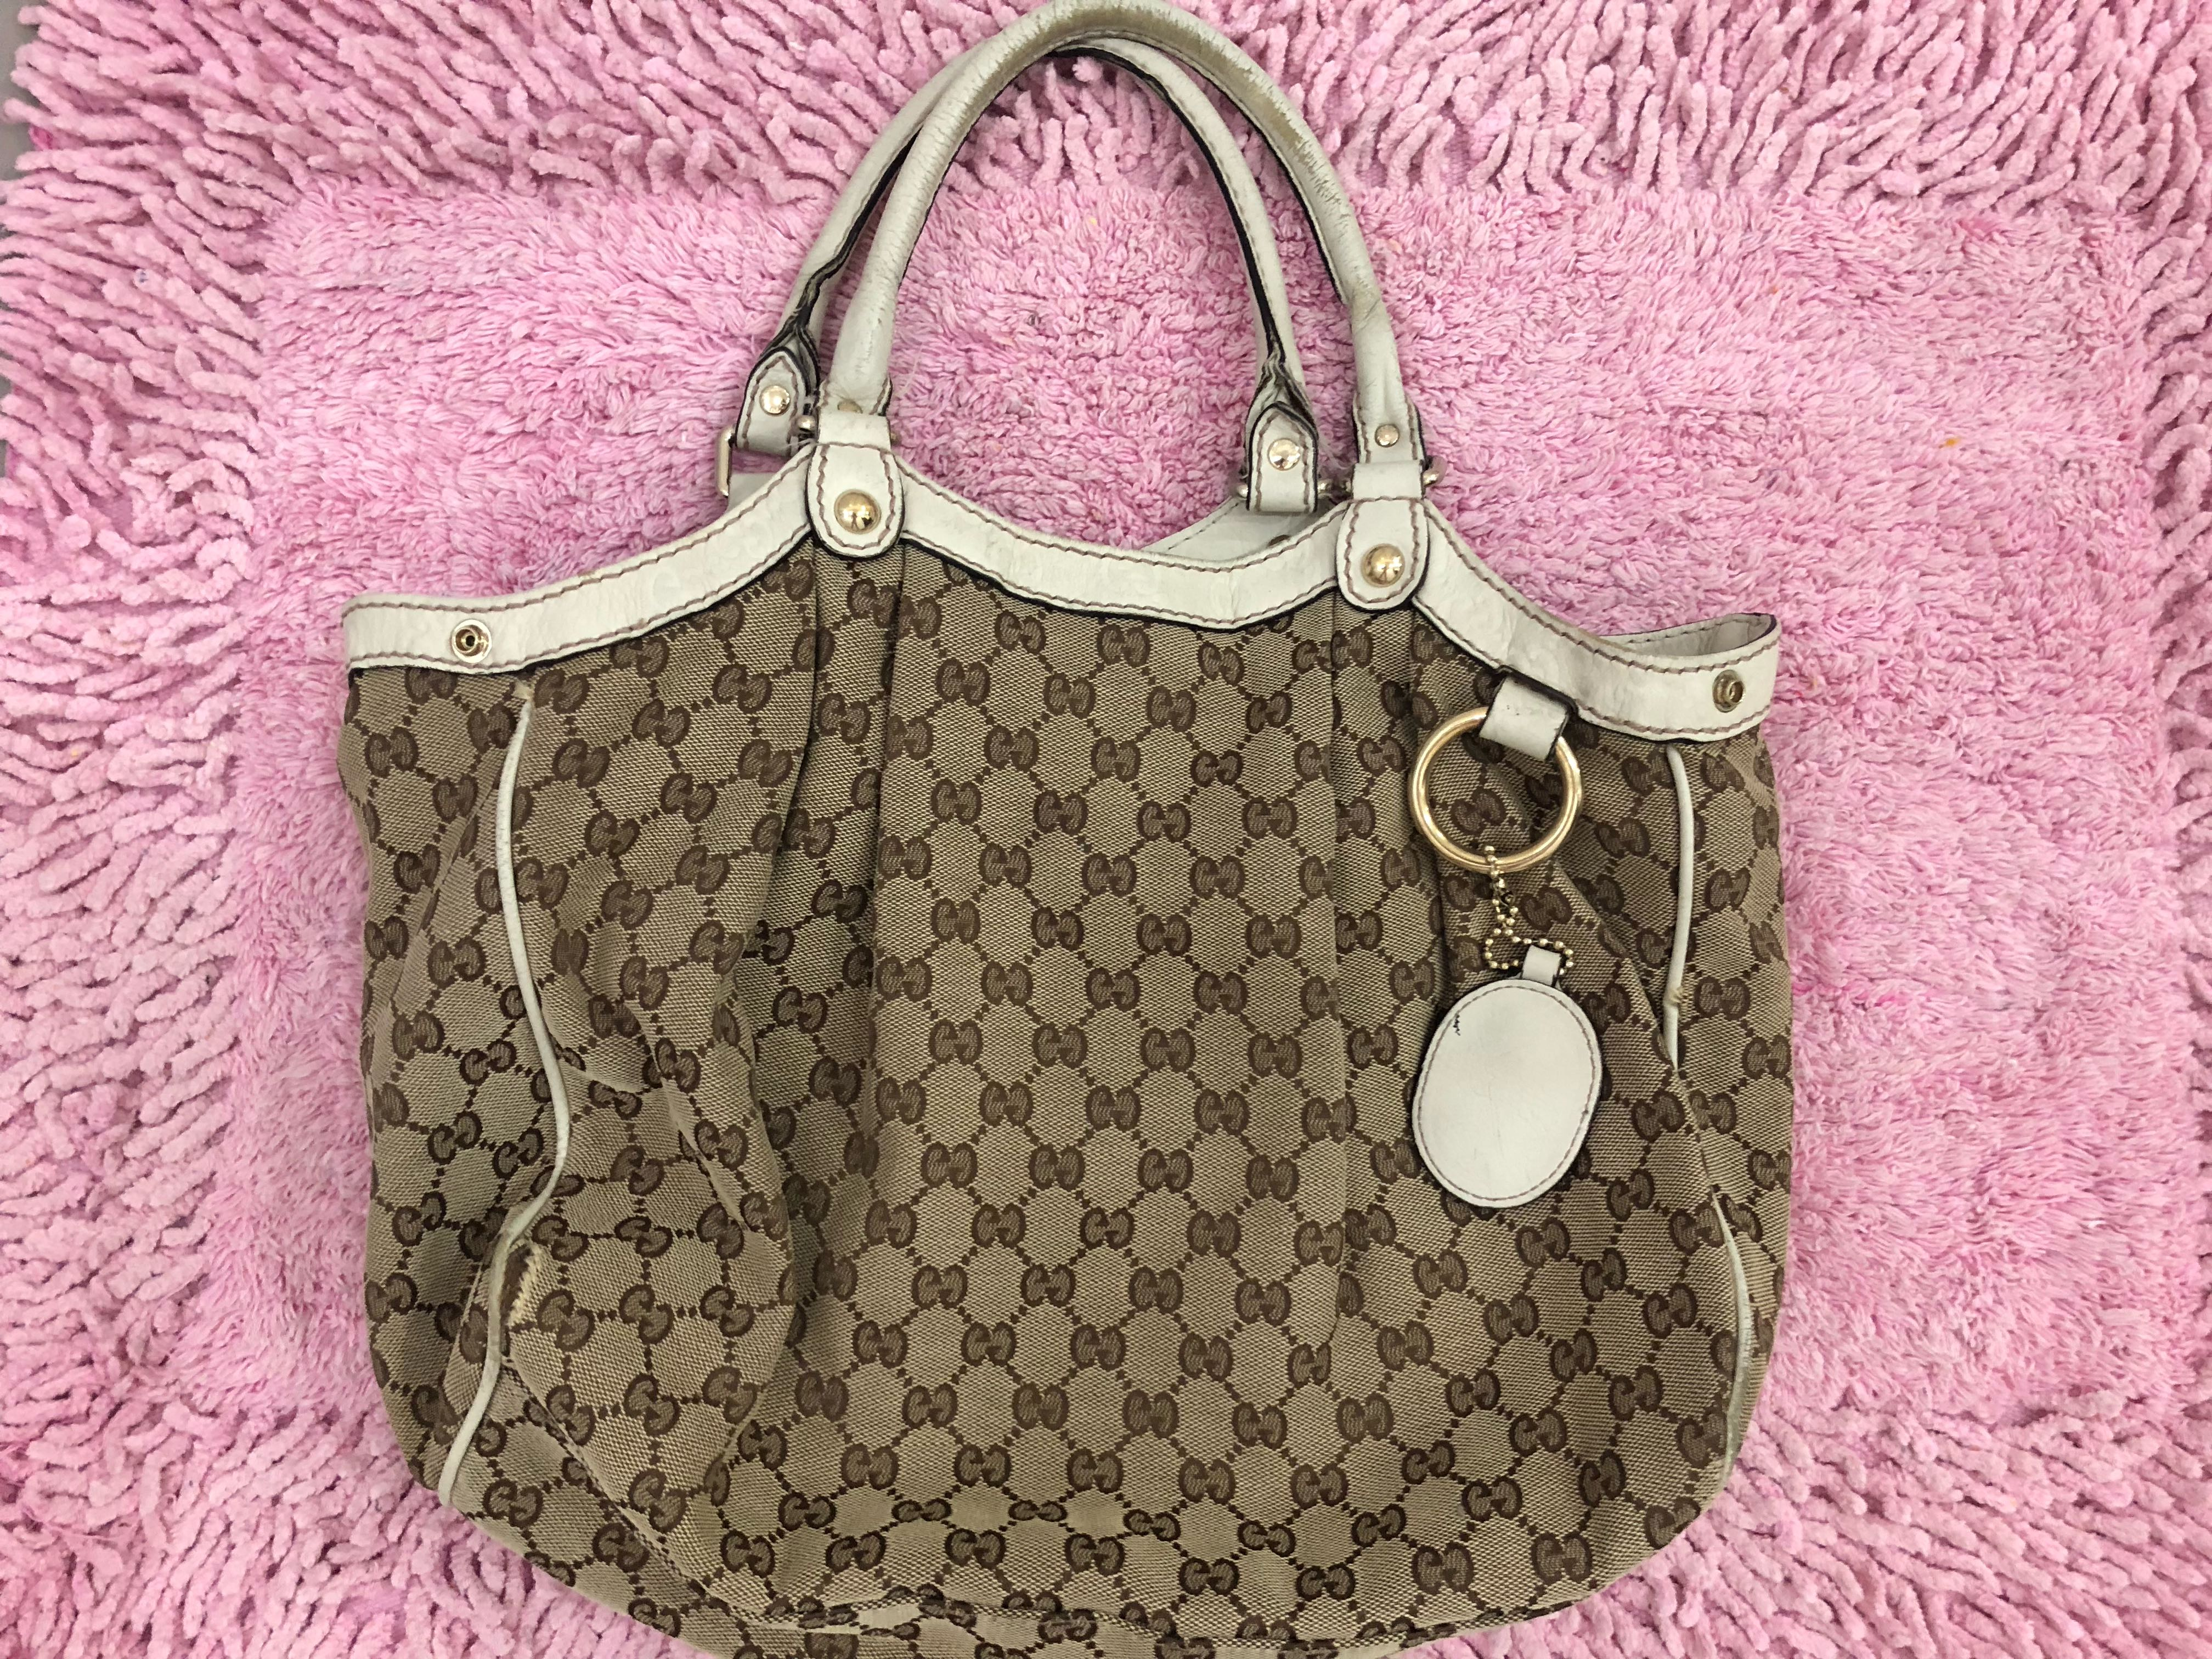 27b3d9045 Gucci Bag, Women's Fashion, Bags & Wallets on Carousell